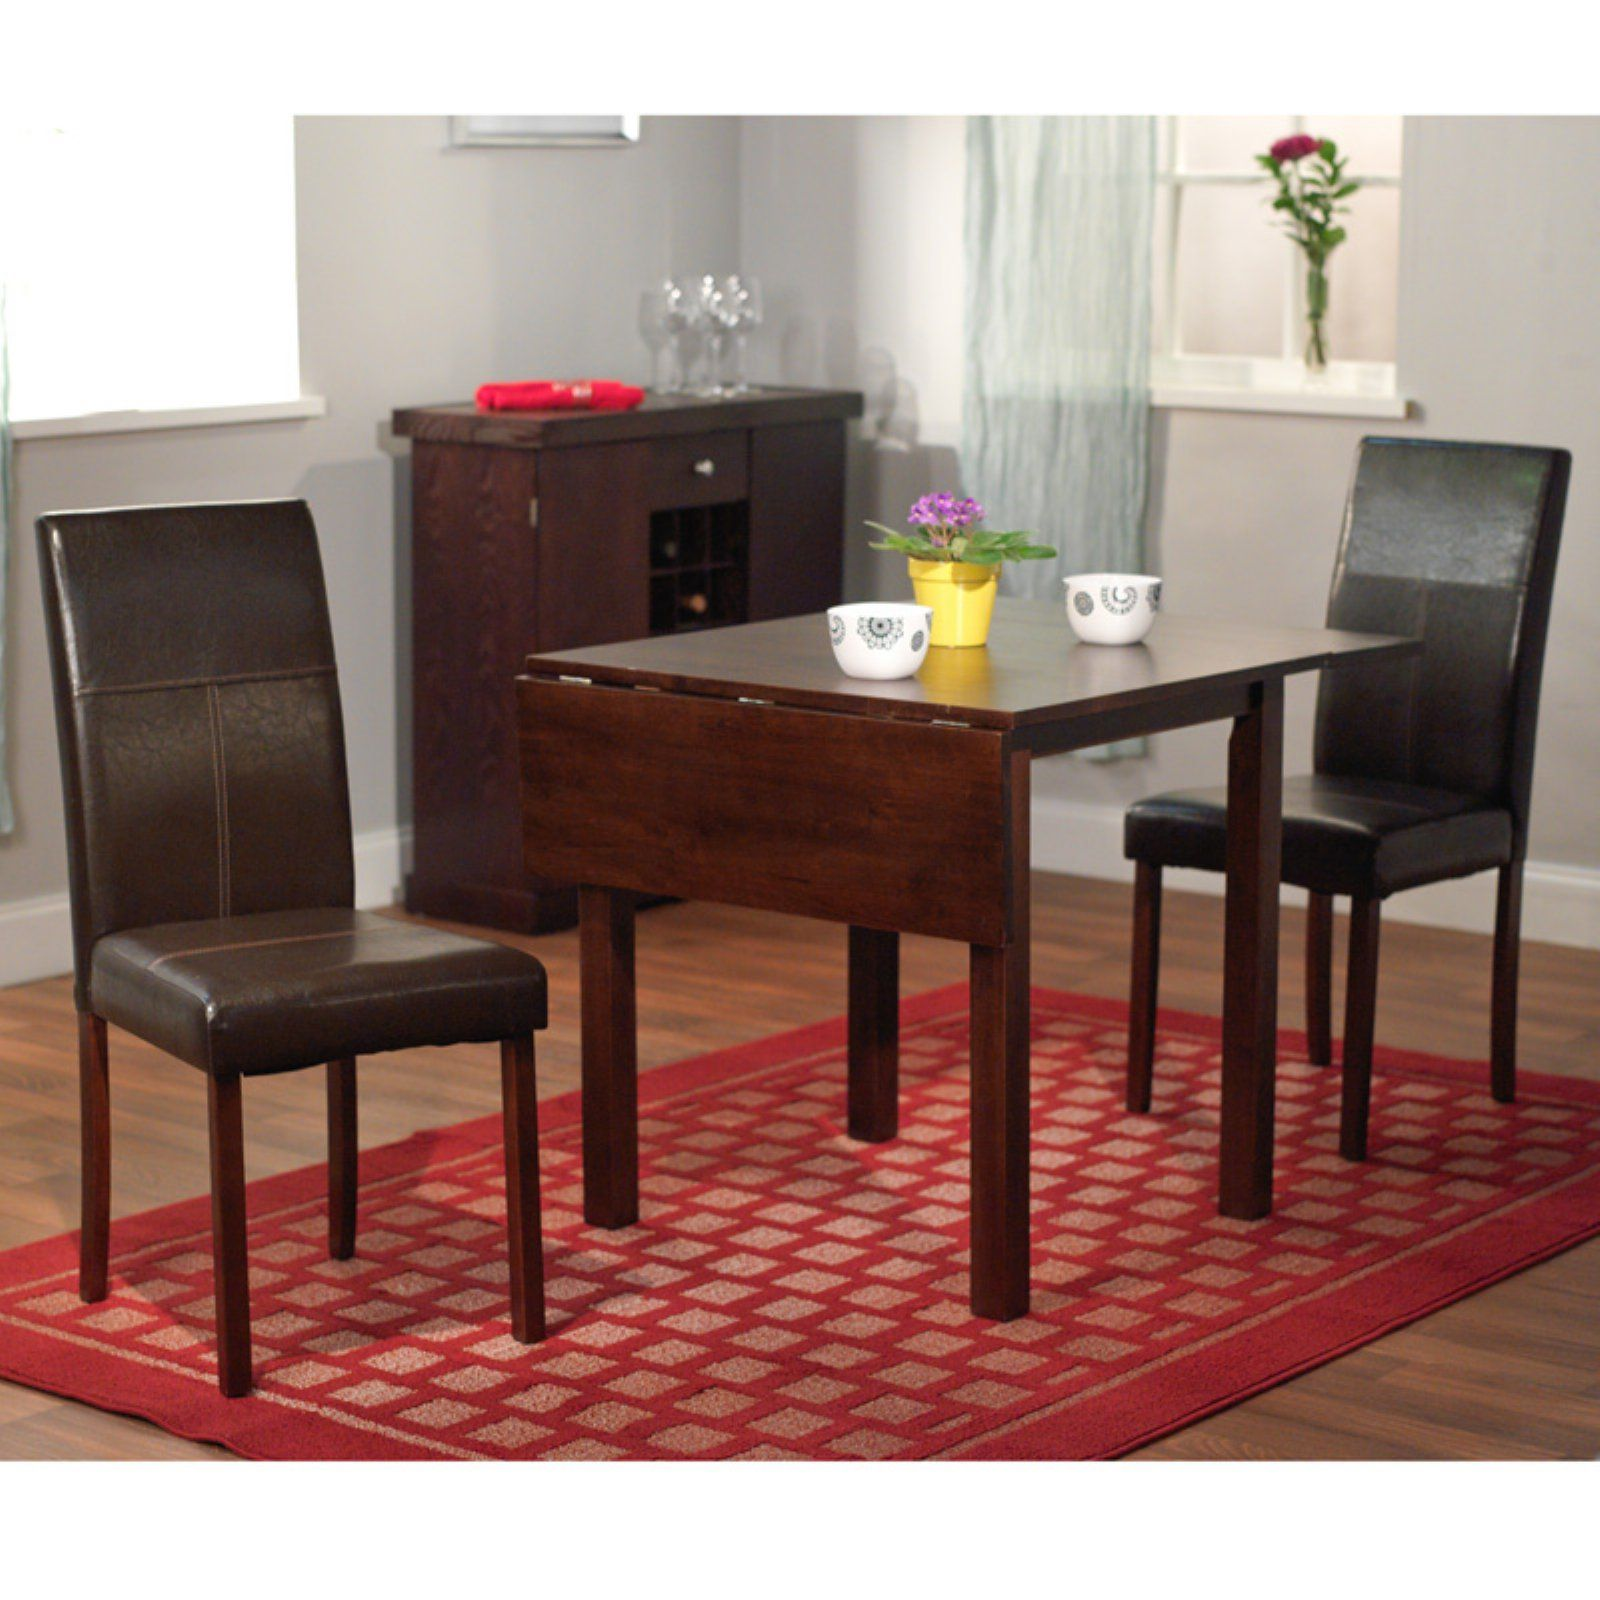 Understanding Systems In Dining Rooms